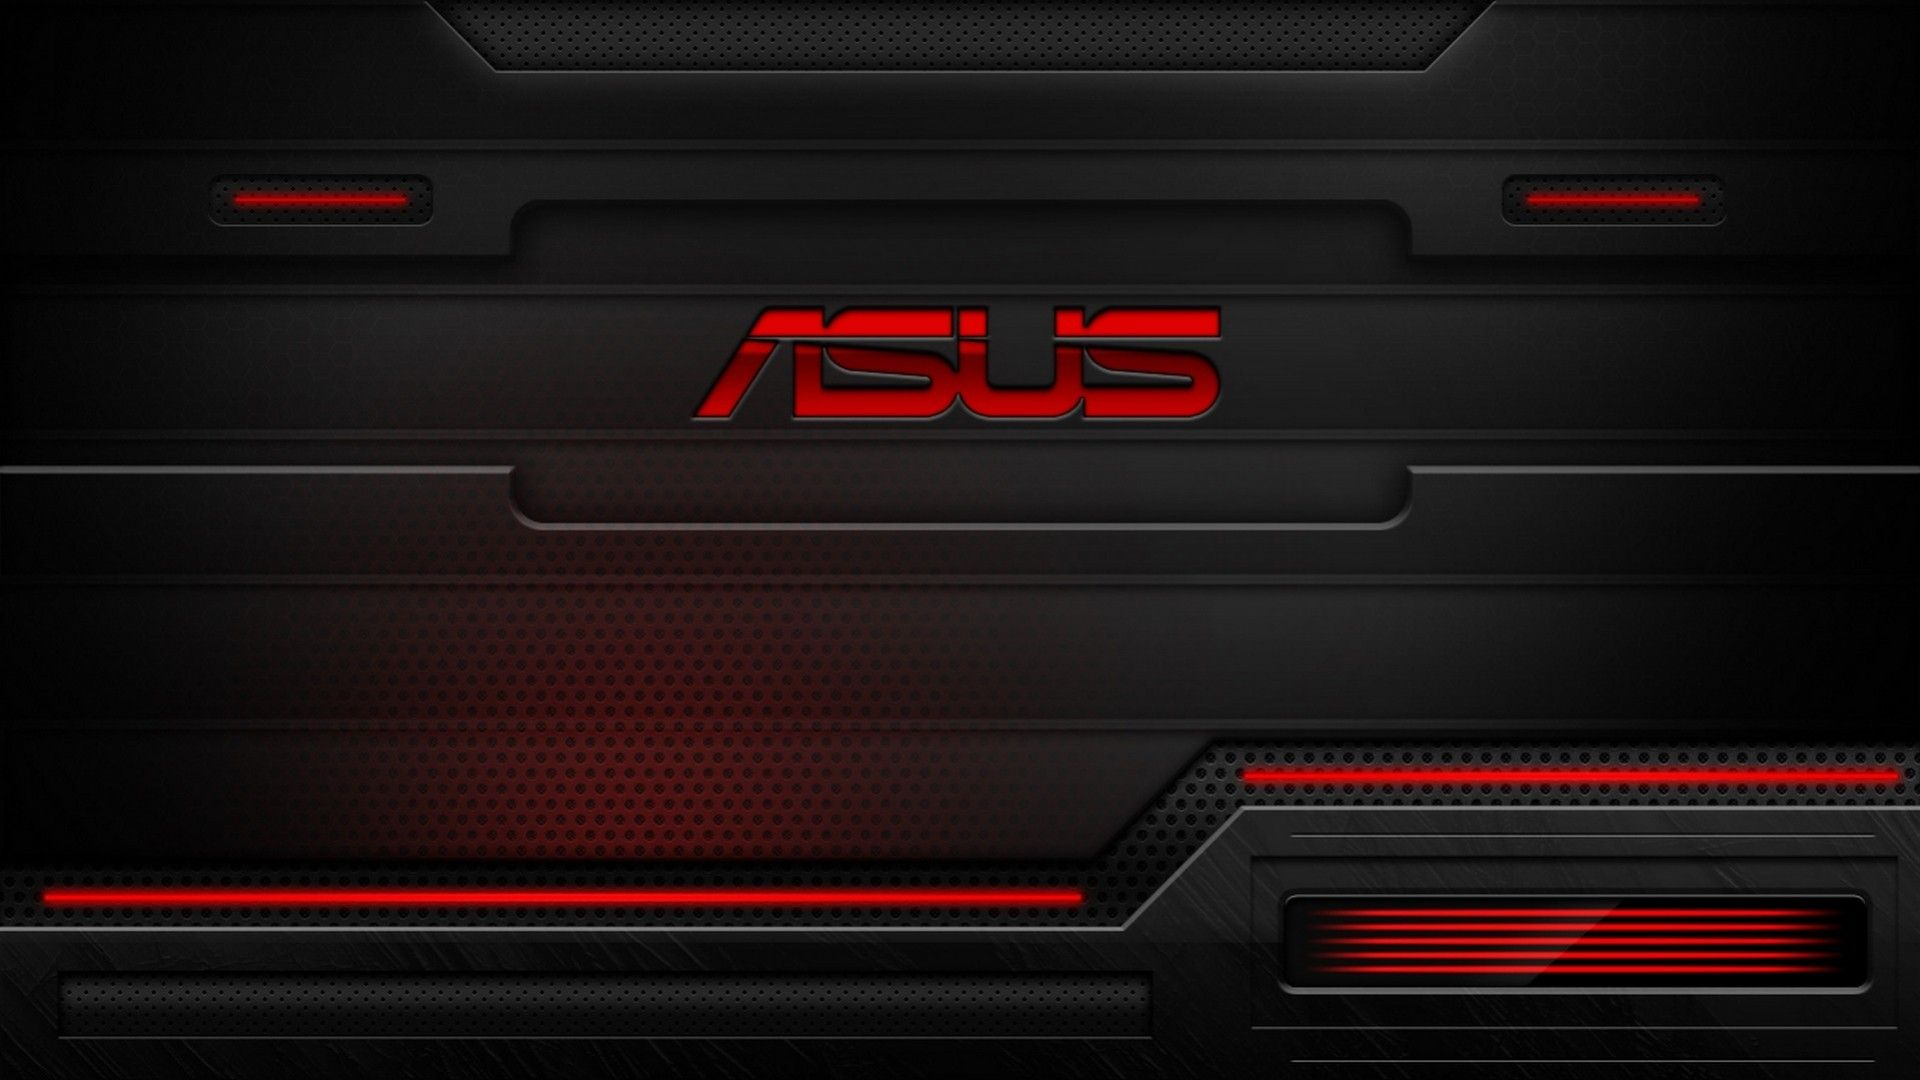 Amazing Asus Pictures & Backgrounds